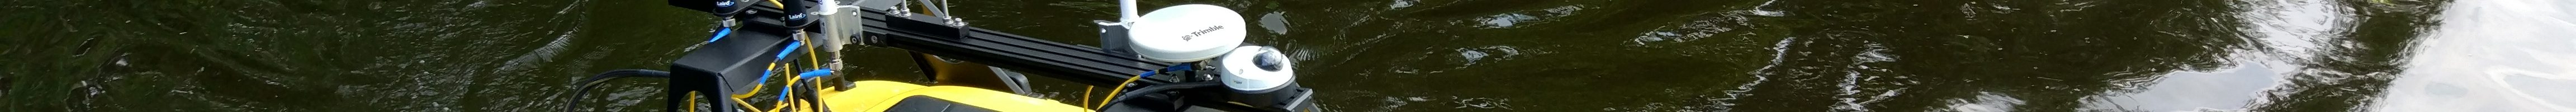 Z-Boat with CARIS Onboard installed